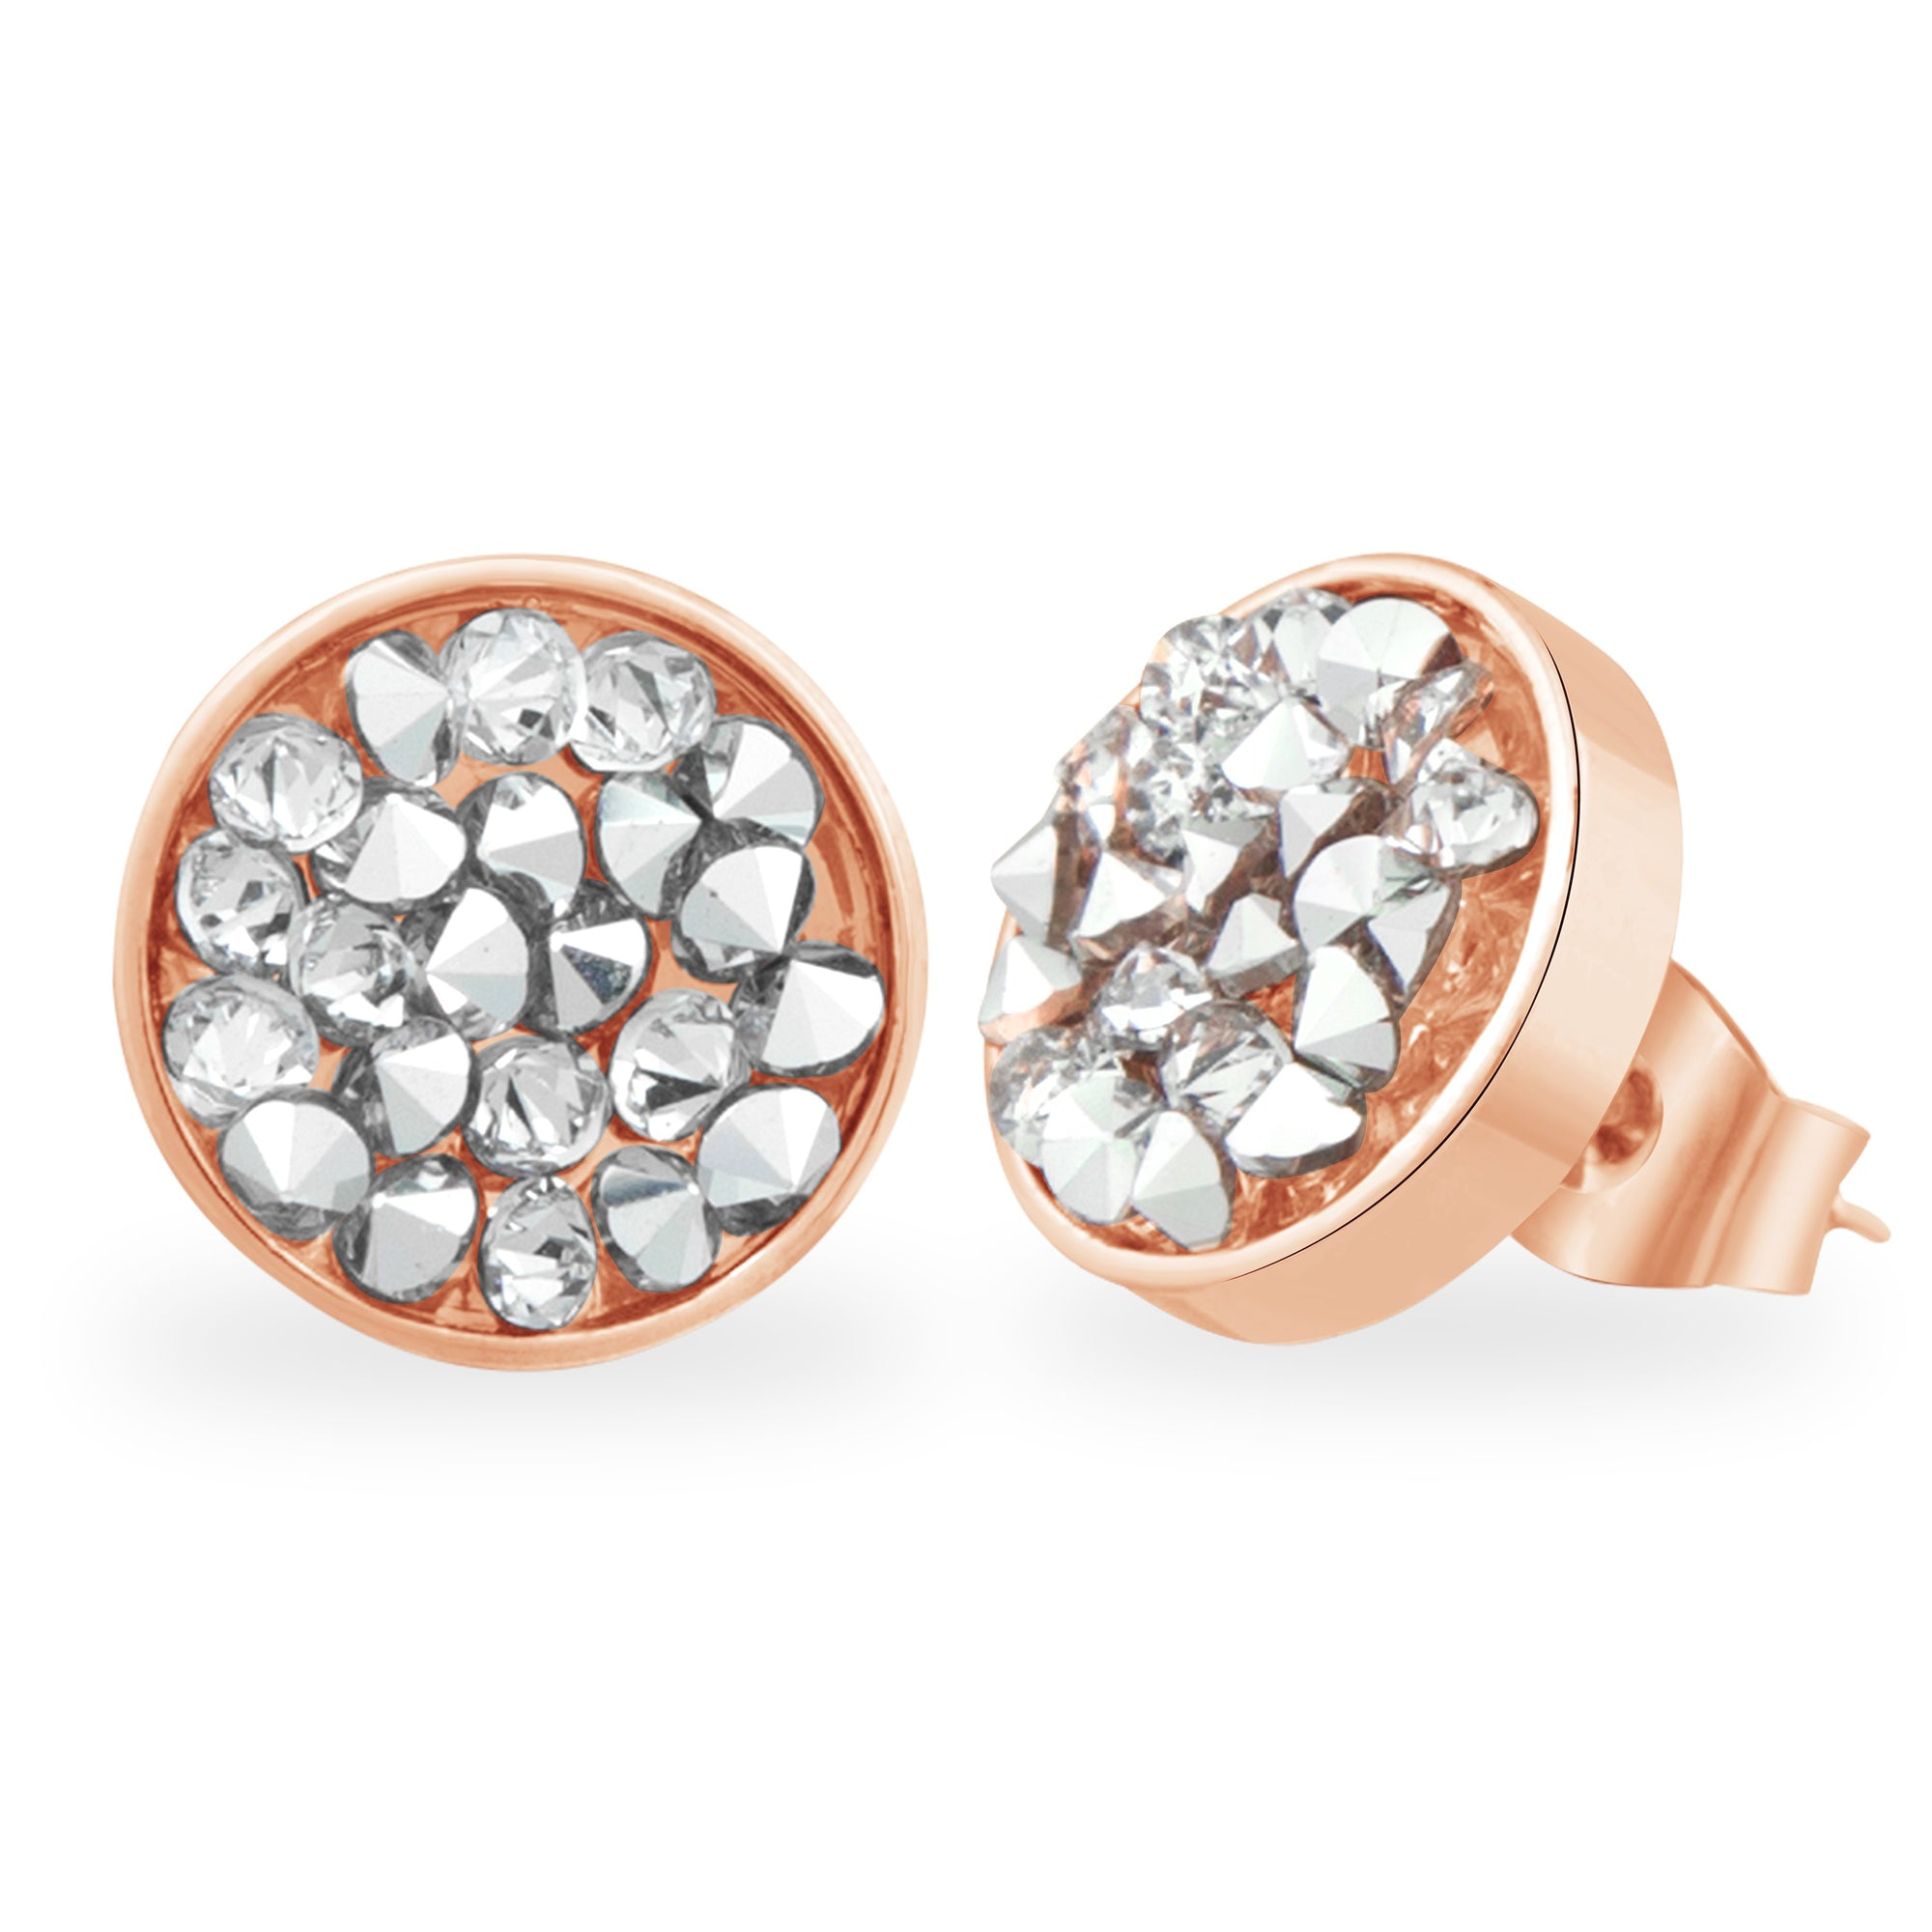 DORADO STUD EARRING ROSE GOLD CAL